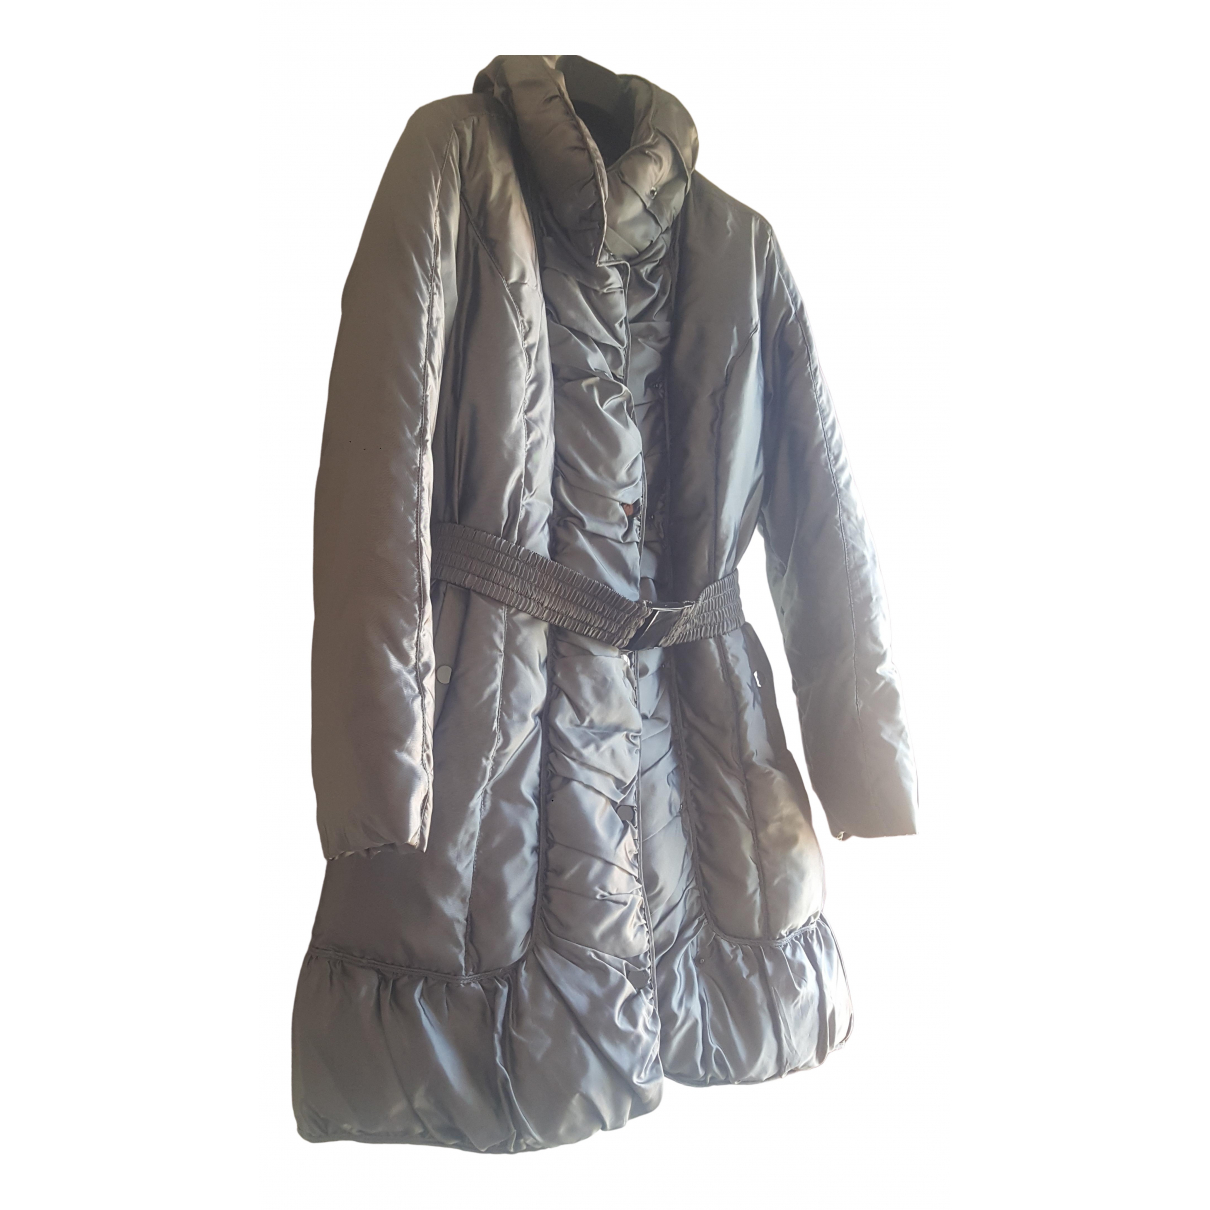 Zara \N Grey coat for Women M International